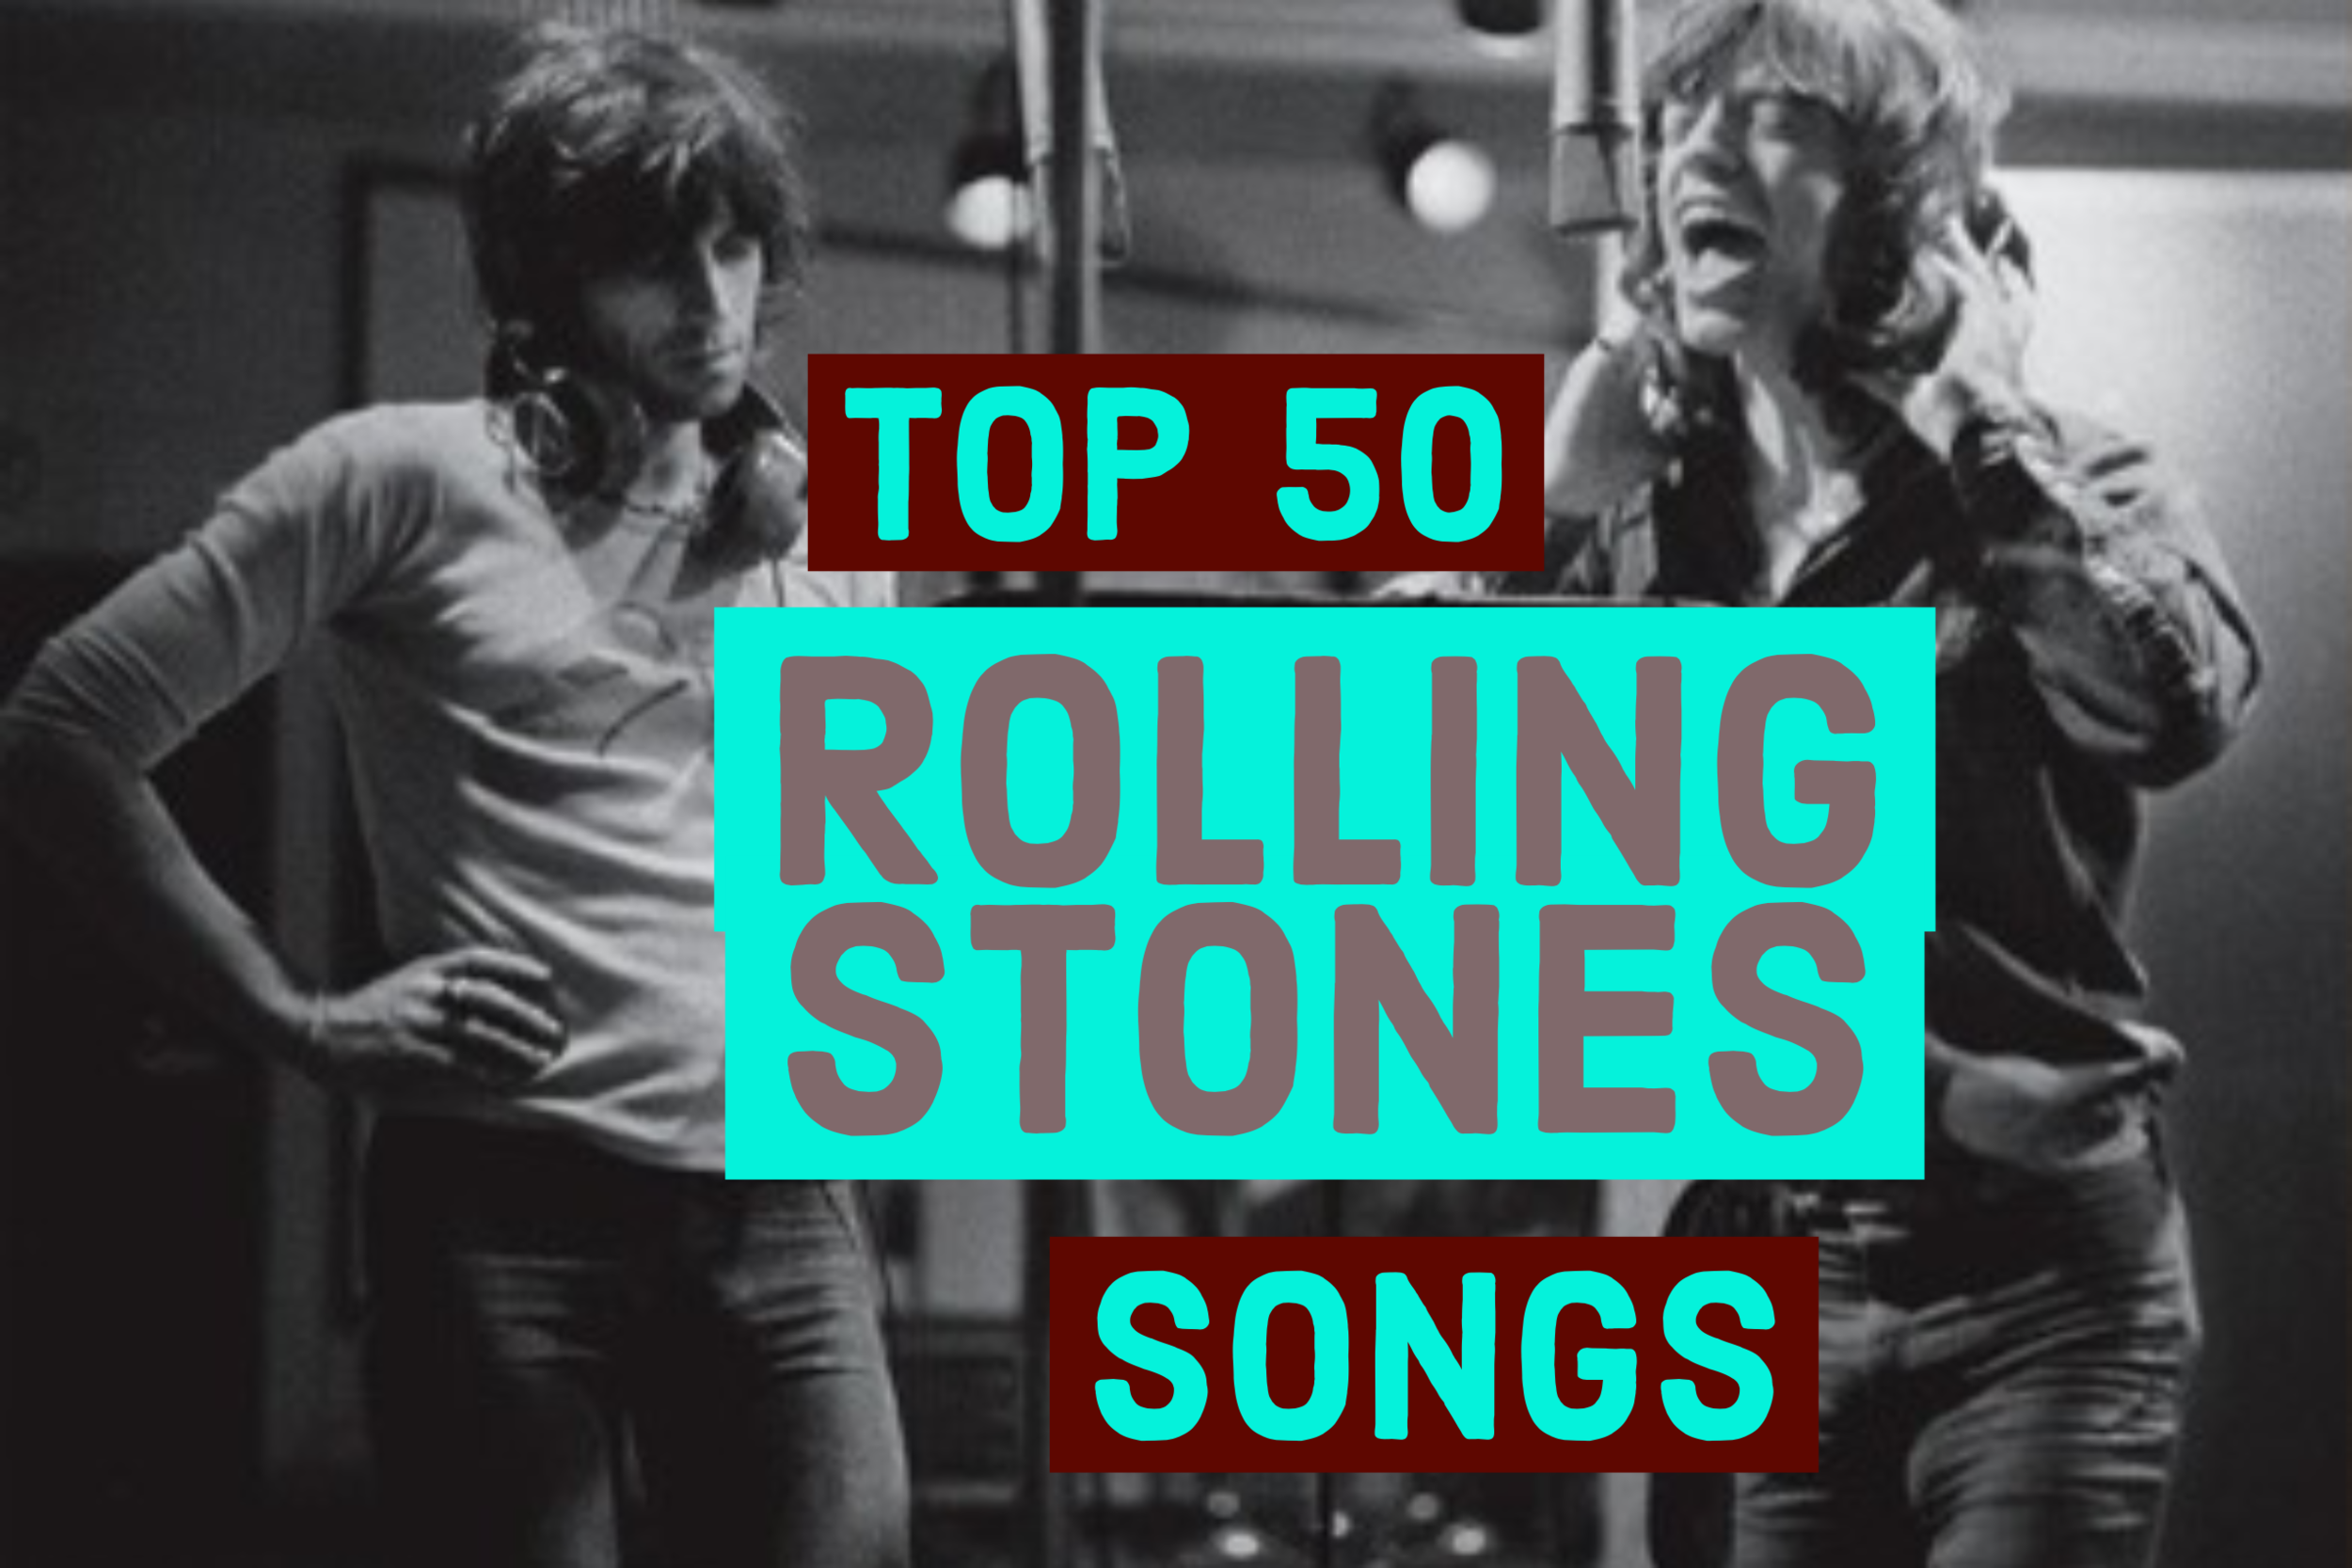 Rolling Stones Top 50.png